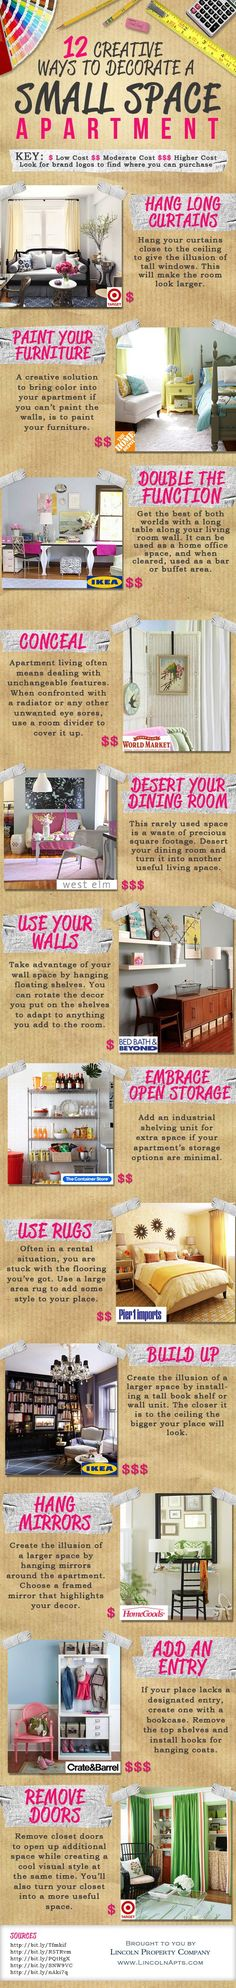 Here are another 12 Ways To Decorate A Small Space Apartment which will cost you hardly anything and will get you some really nice decor, furnishings, and very functional space. Who ever said small spaces are not as good as big spaces think again. Don't forget to transform that bookcase into a closet.